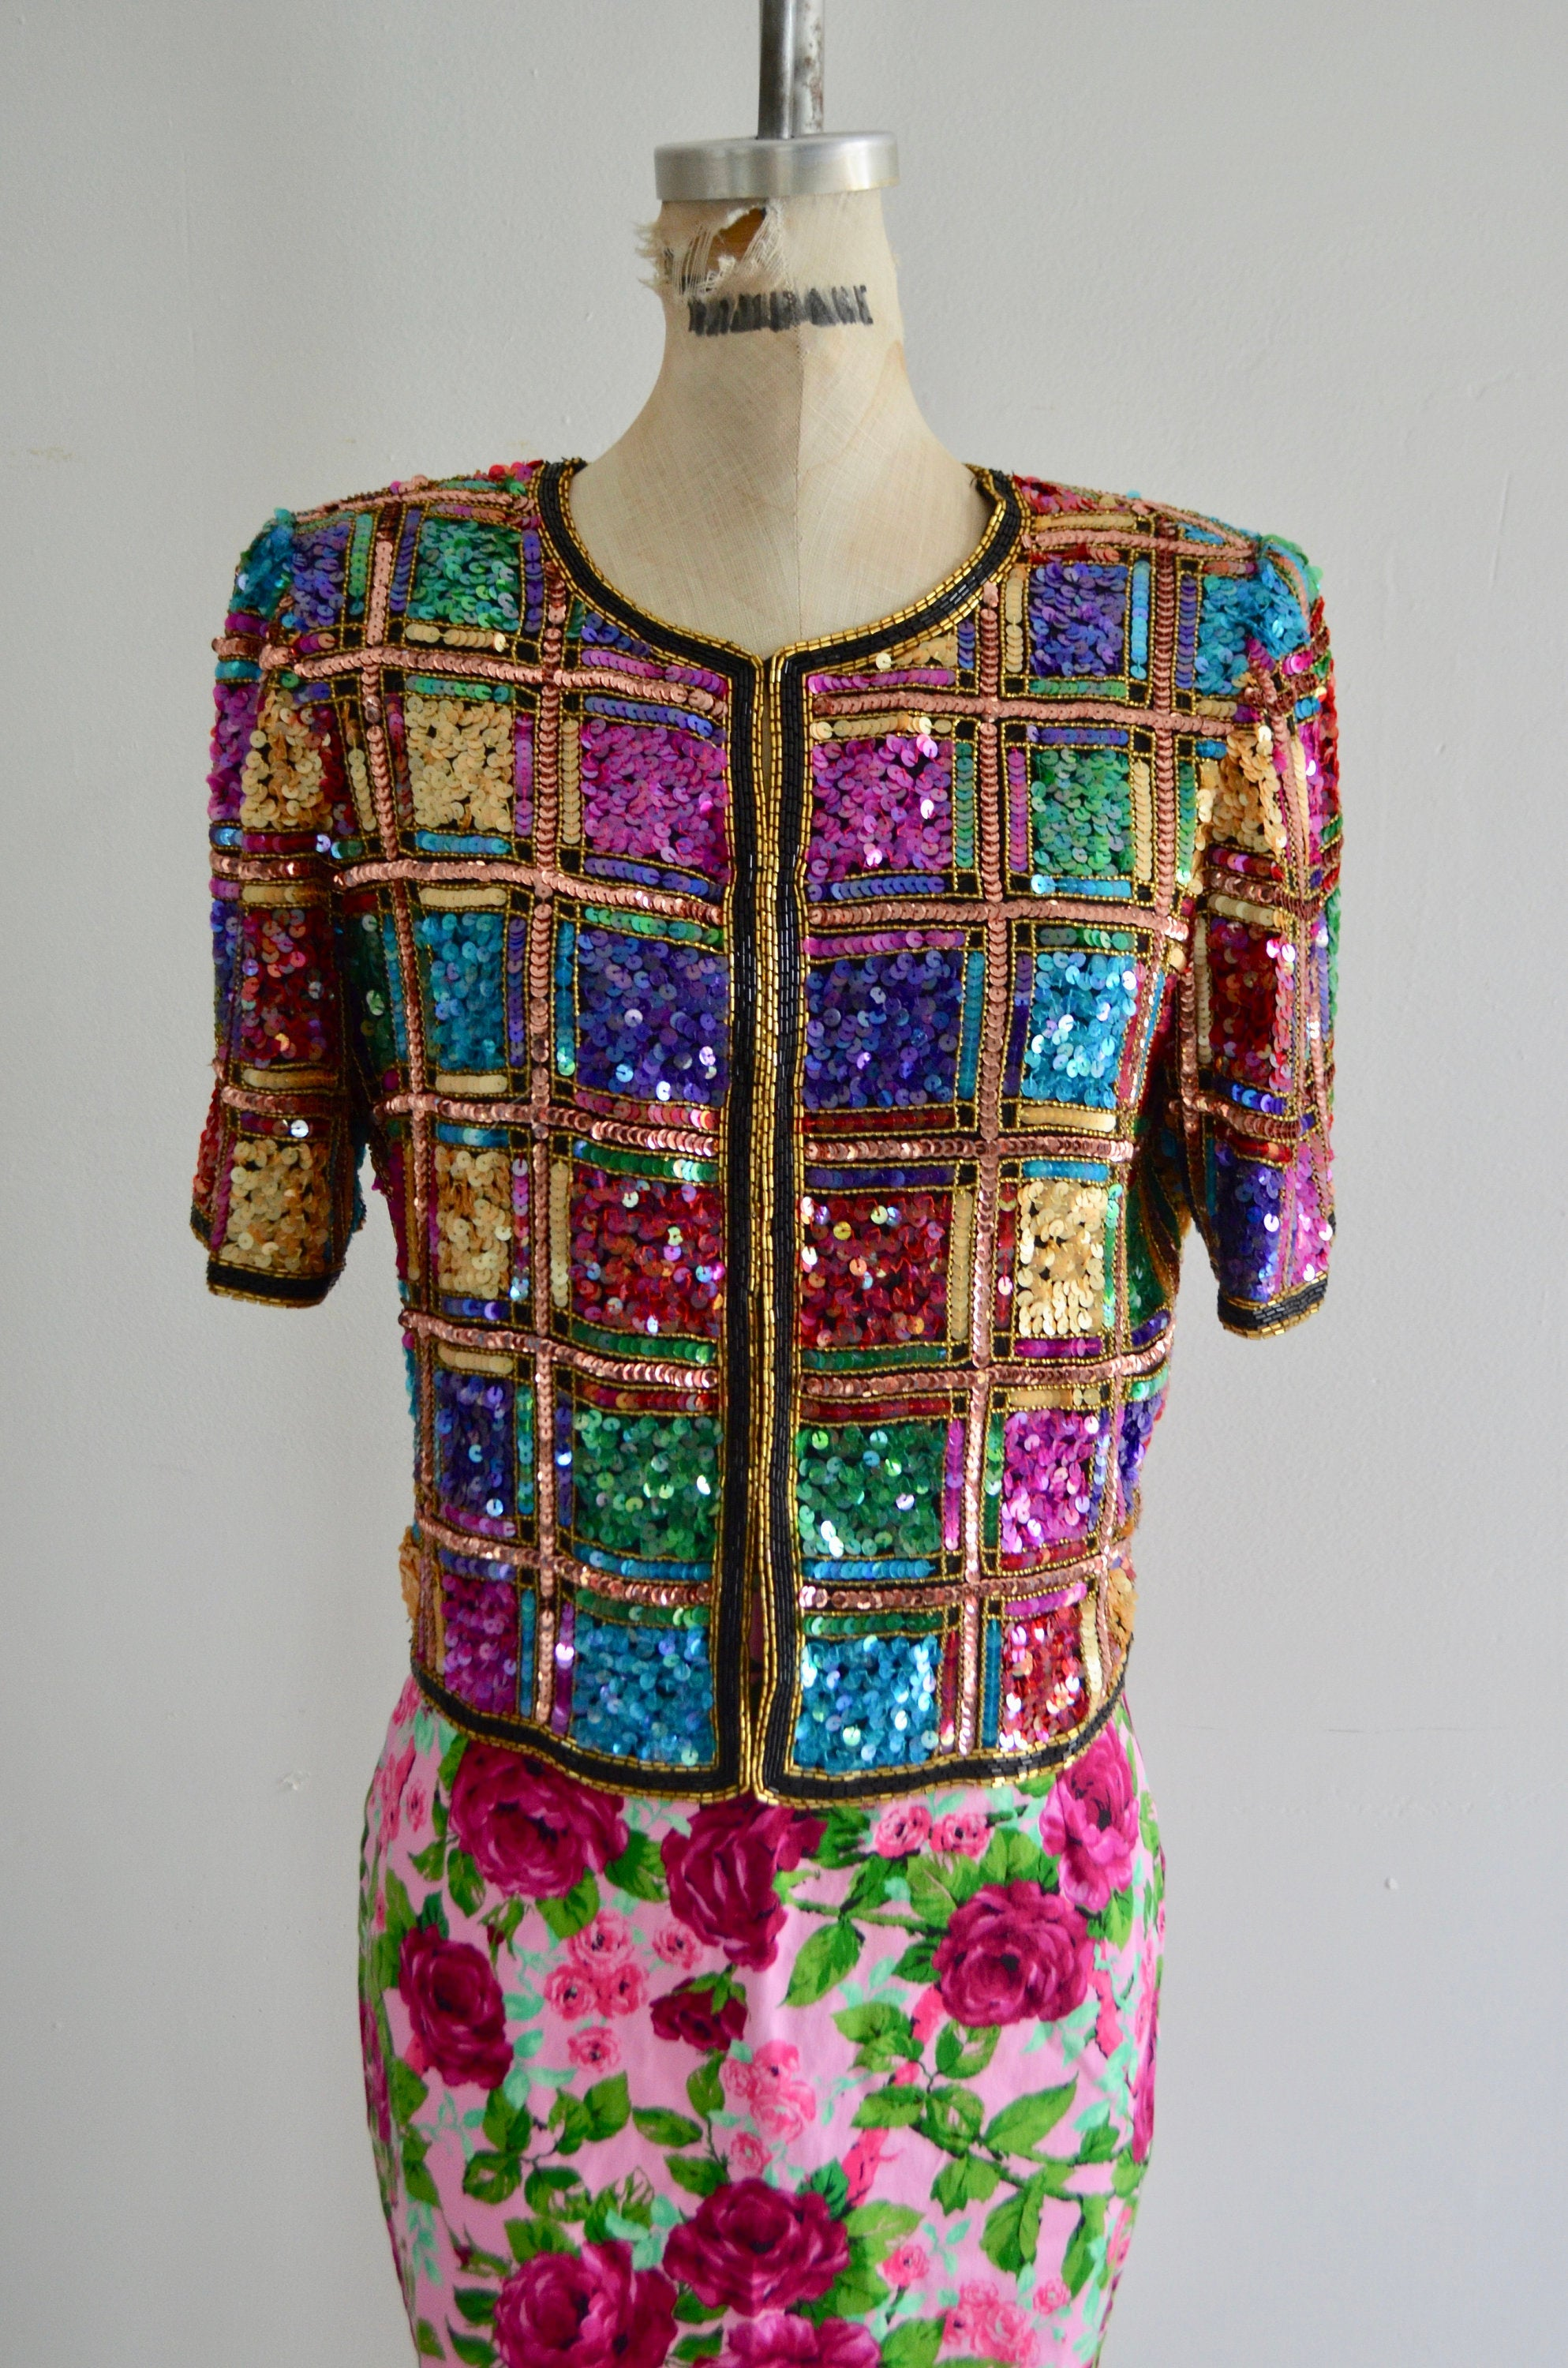 Mix And Match Prints Multicolor Sequin Silk Cropped Top Deadly Dames Pink Floral Pencil Skirt Set